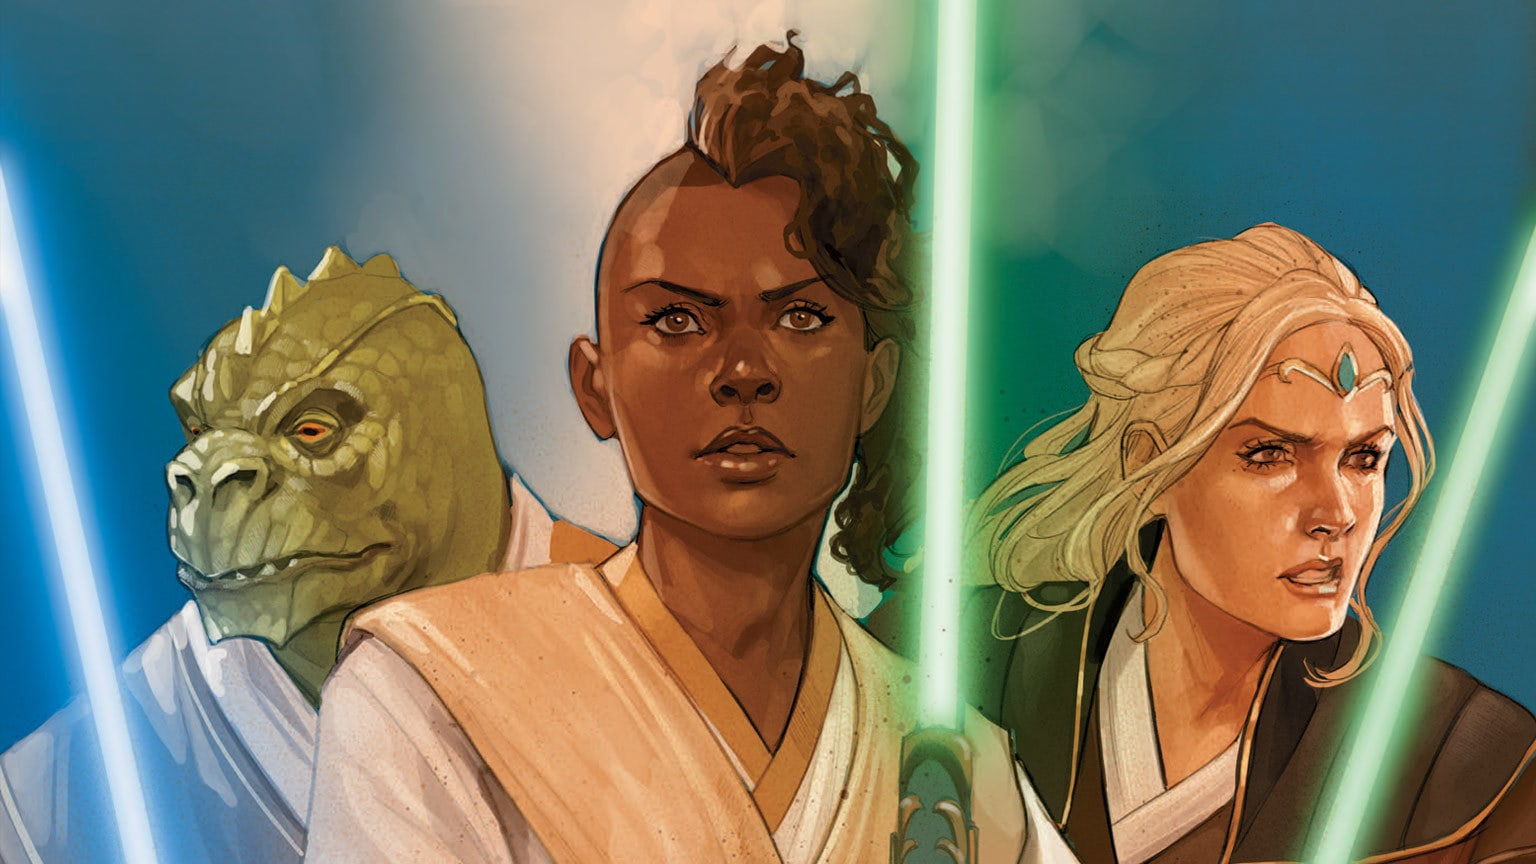 A Padawan Faces the Jedi Trials in Marvel's Star Wars: The High Republic #1 – Exclusive Preview